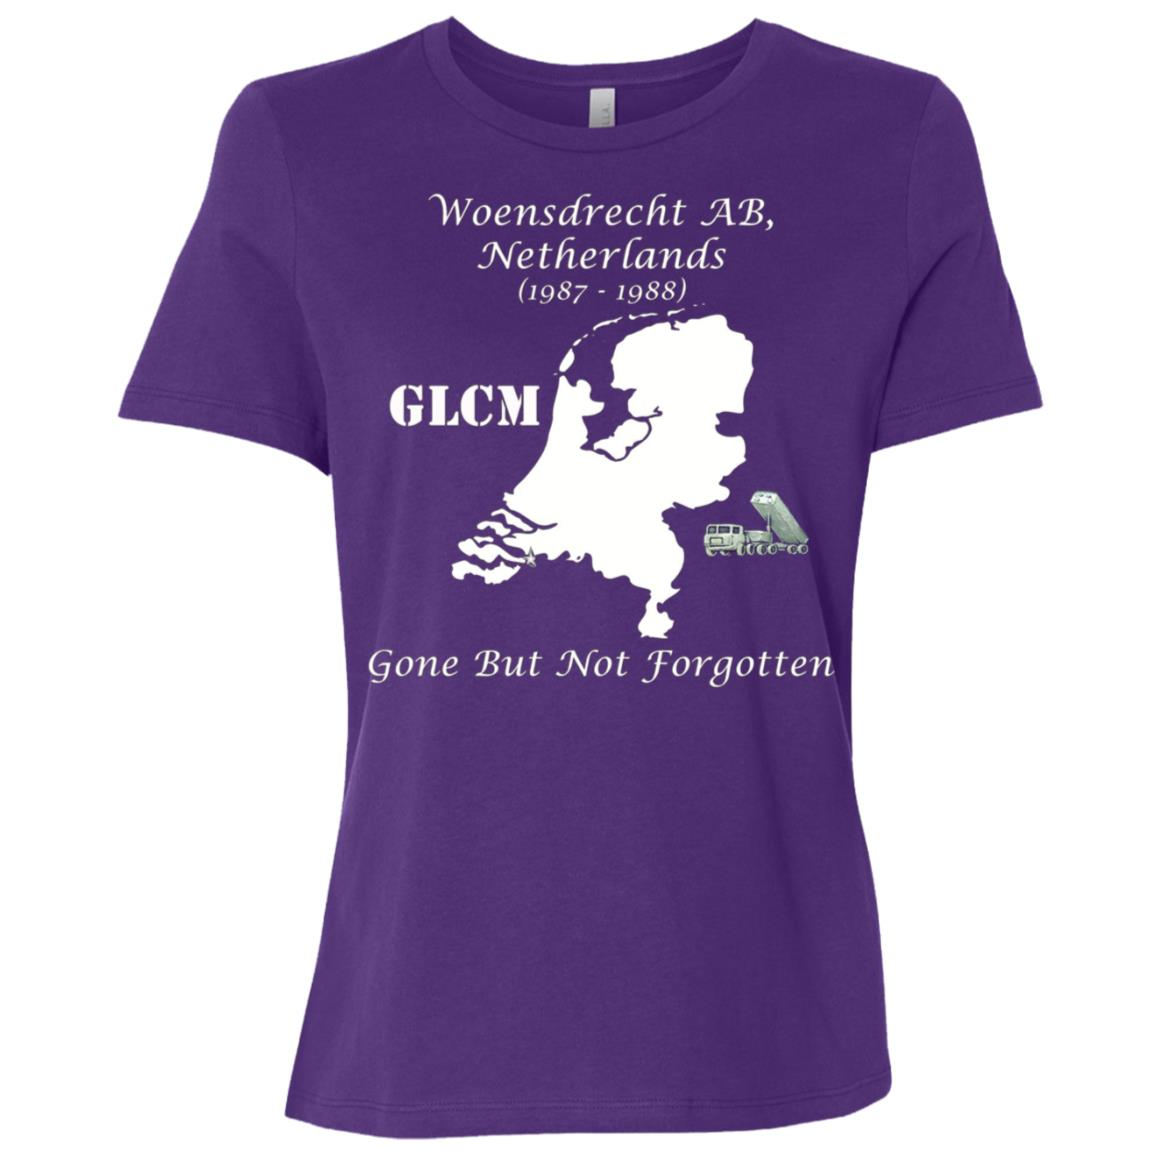 GLCM Woensdrecht AB Netherlands Gone But Not Forgotten Women Short Sleeve T-Shirt